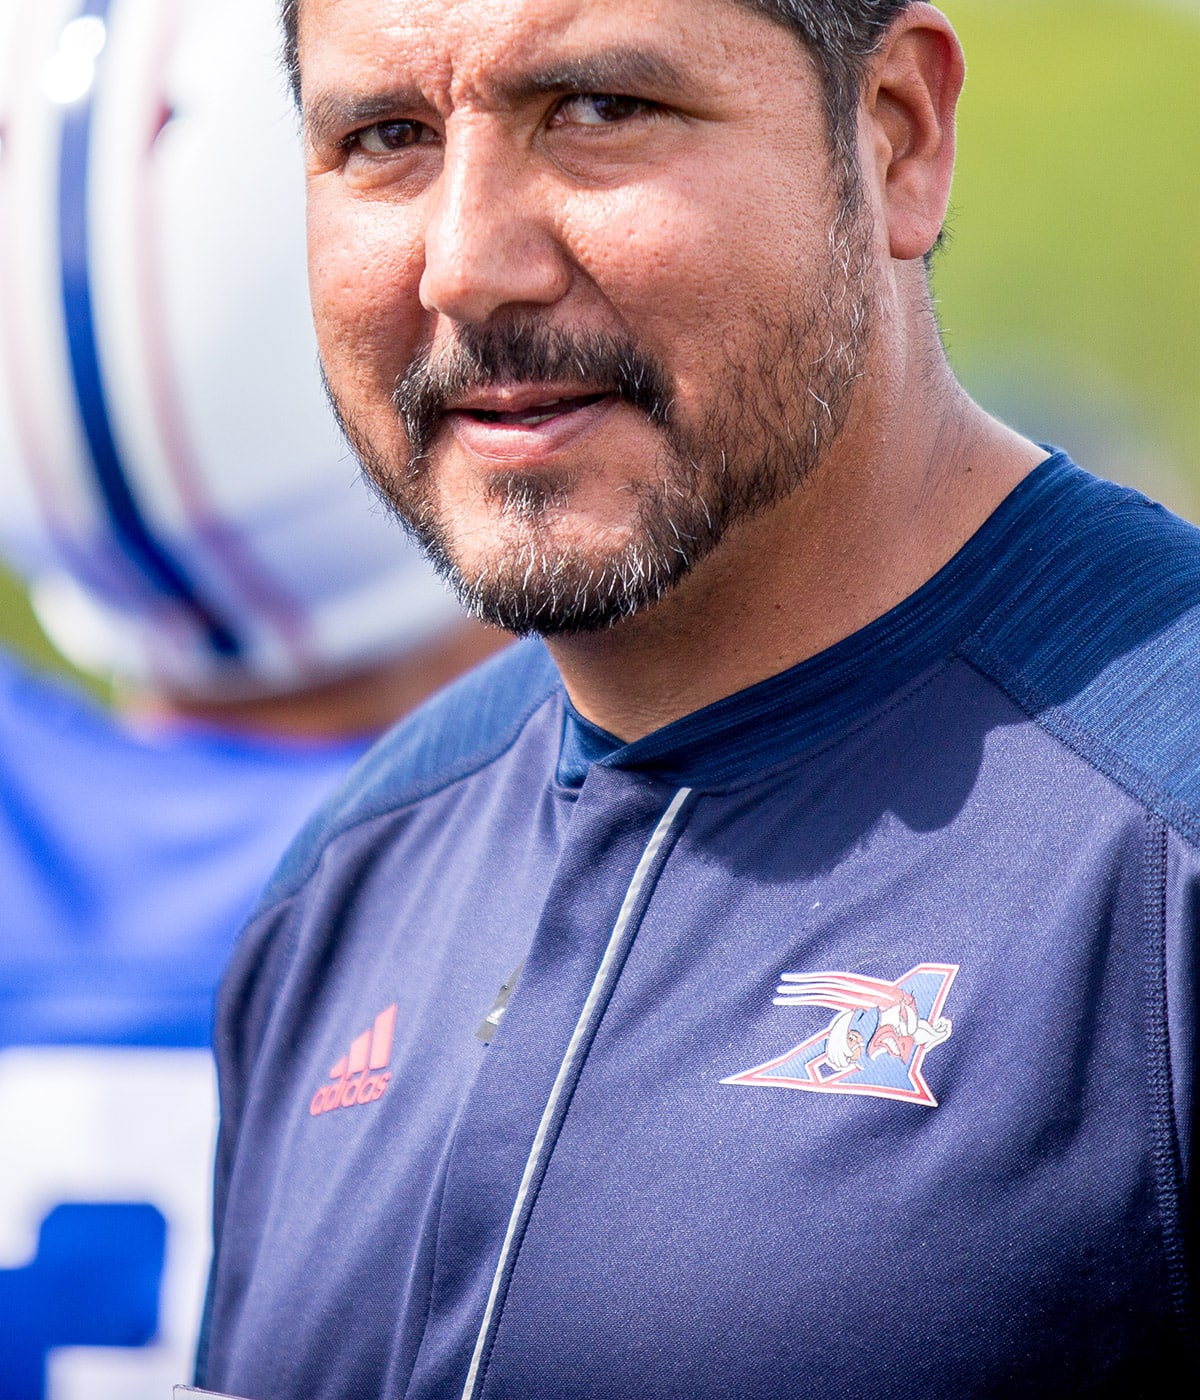 Anthony Calvillo: The cycle of violence stopped at me